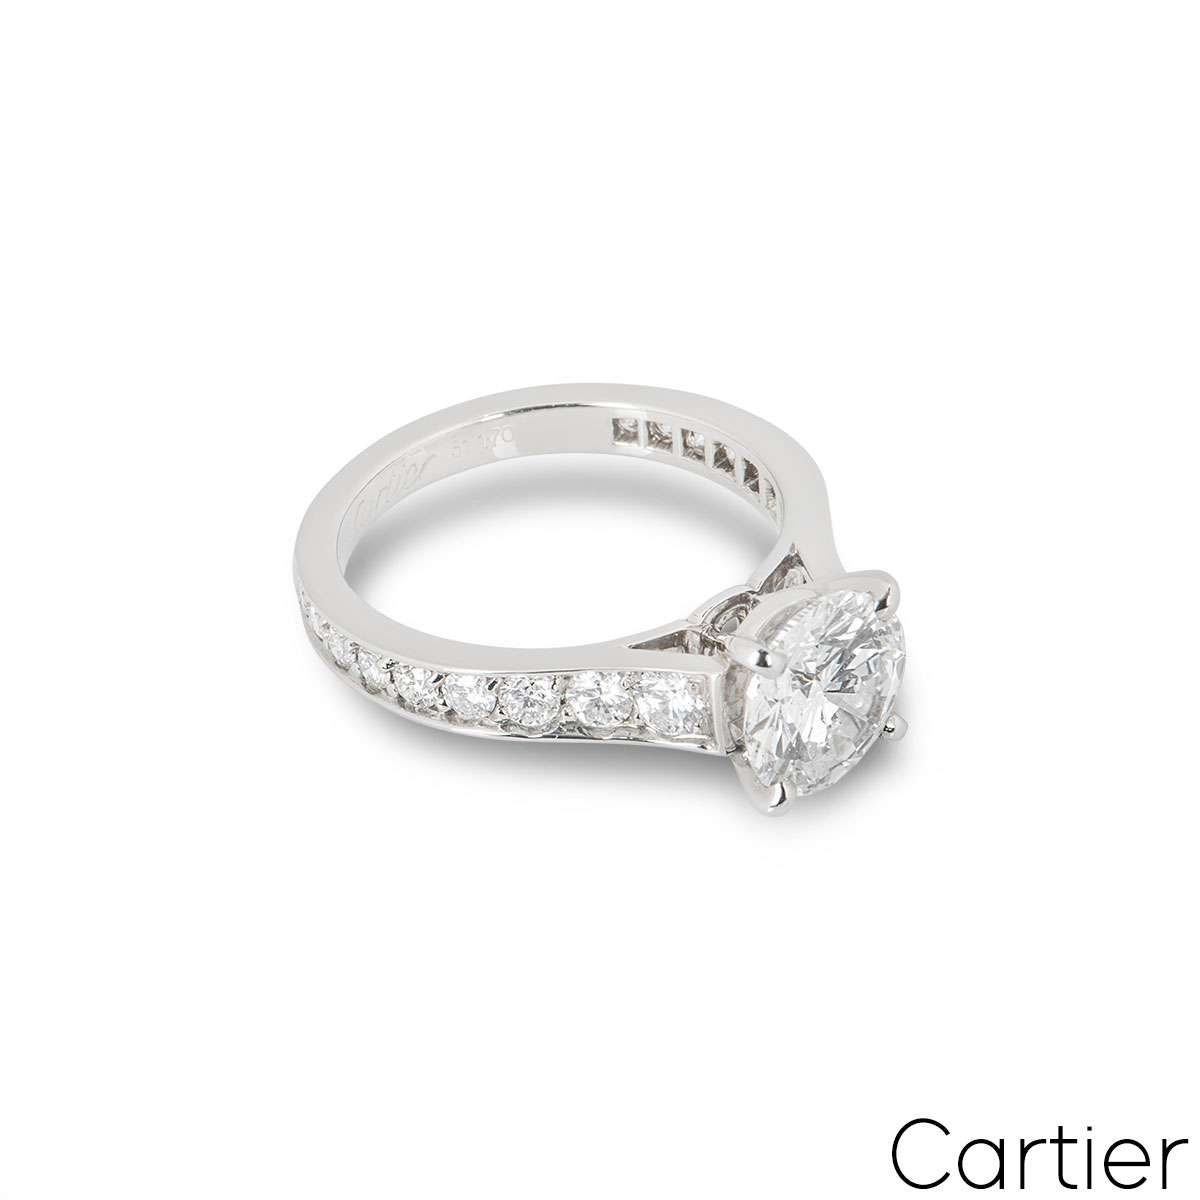 Cartier Solitaire 1895 Diamond Ring 1.70ct G/VVS1